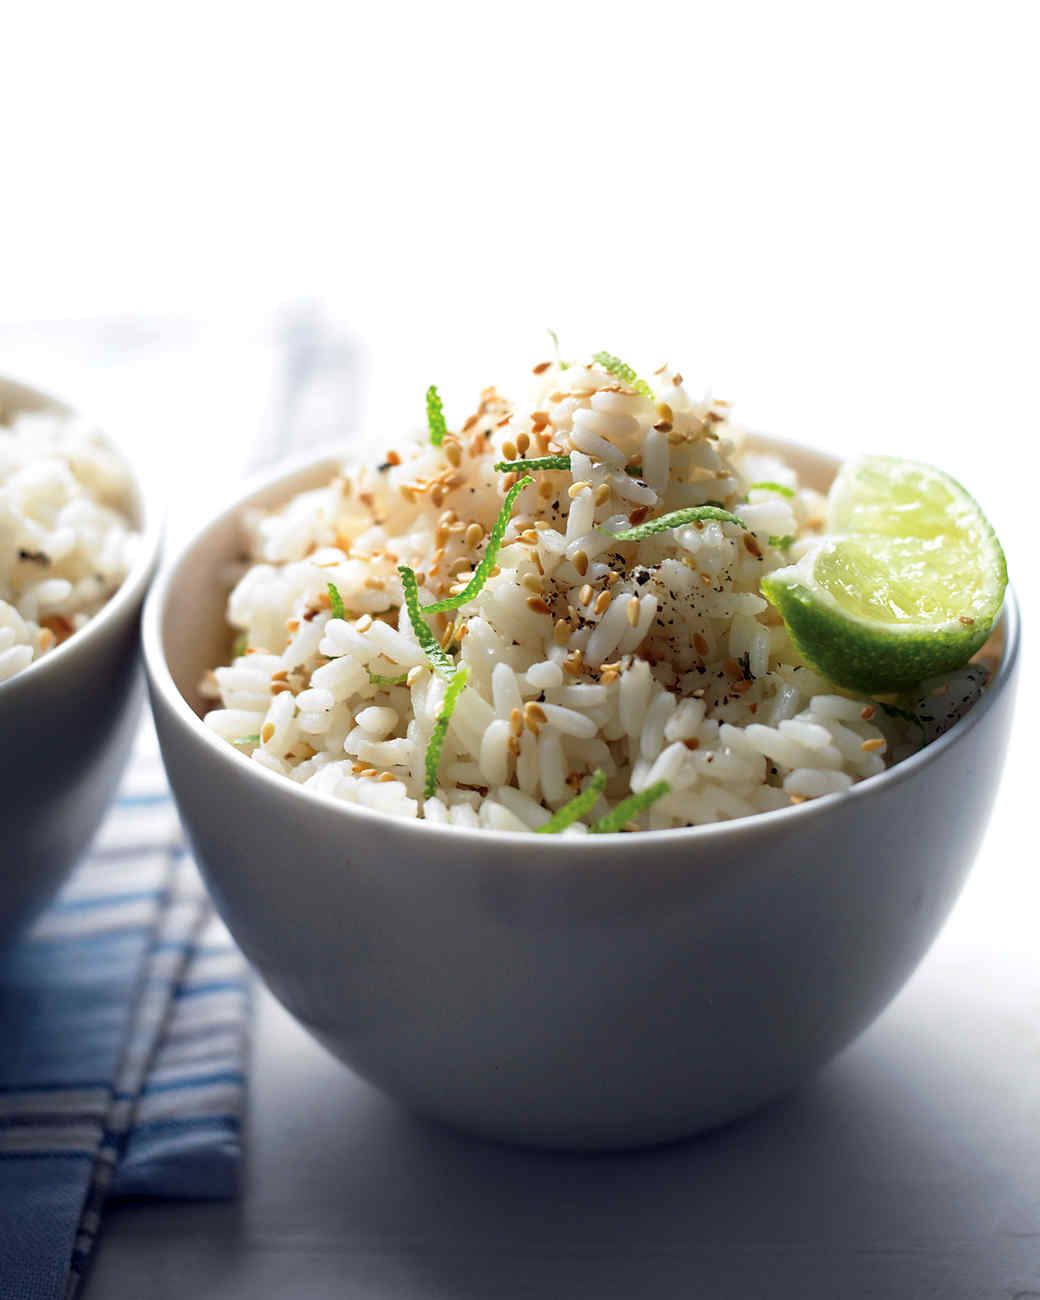 med103746_0508_lime-rice.jpg